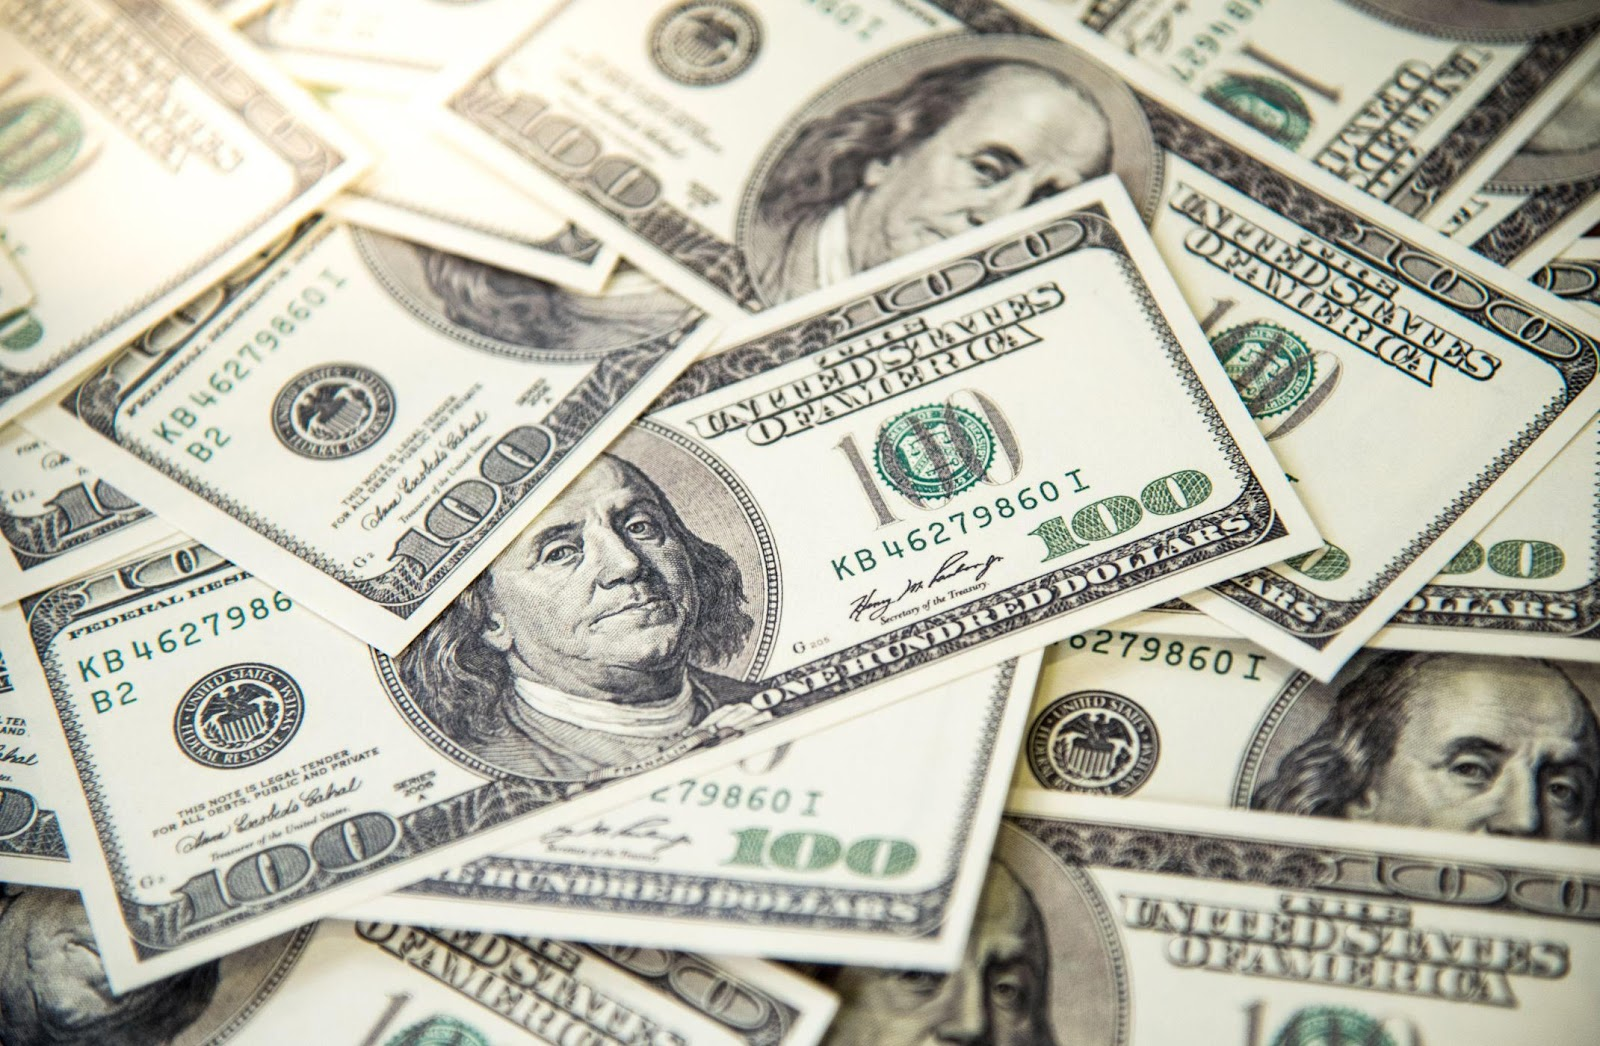 How the U.S. Dollar Became the World's Reserve Currency